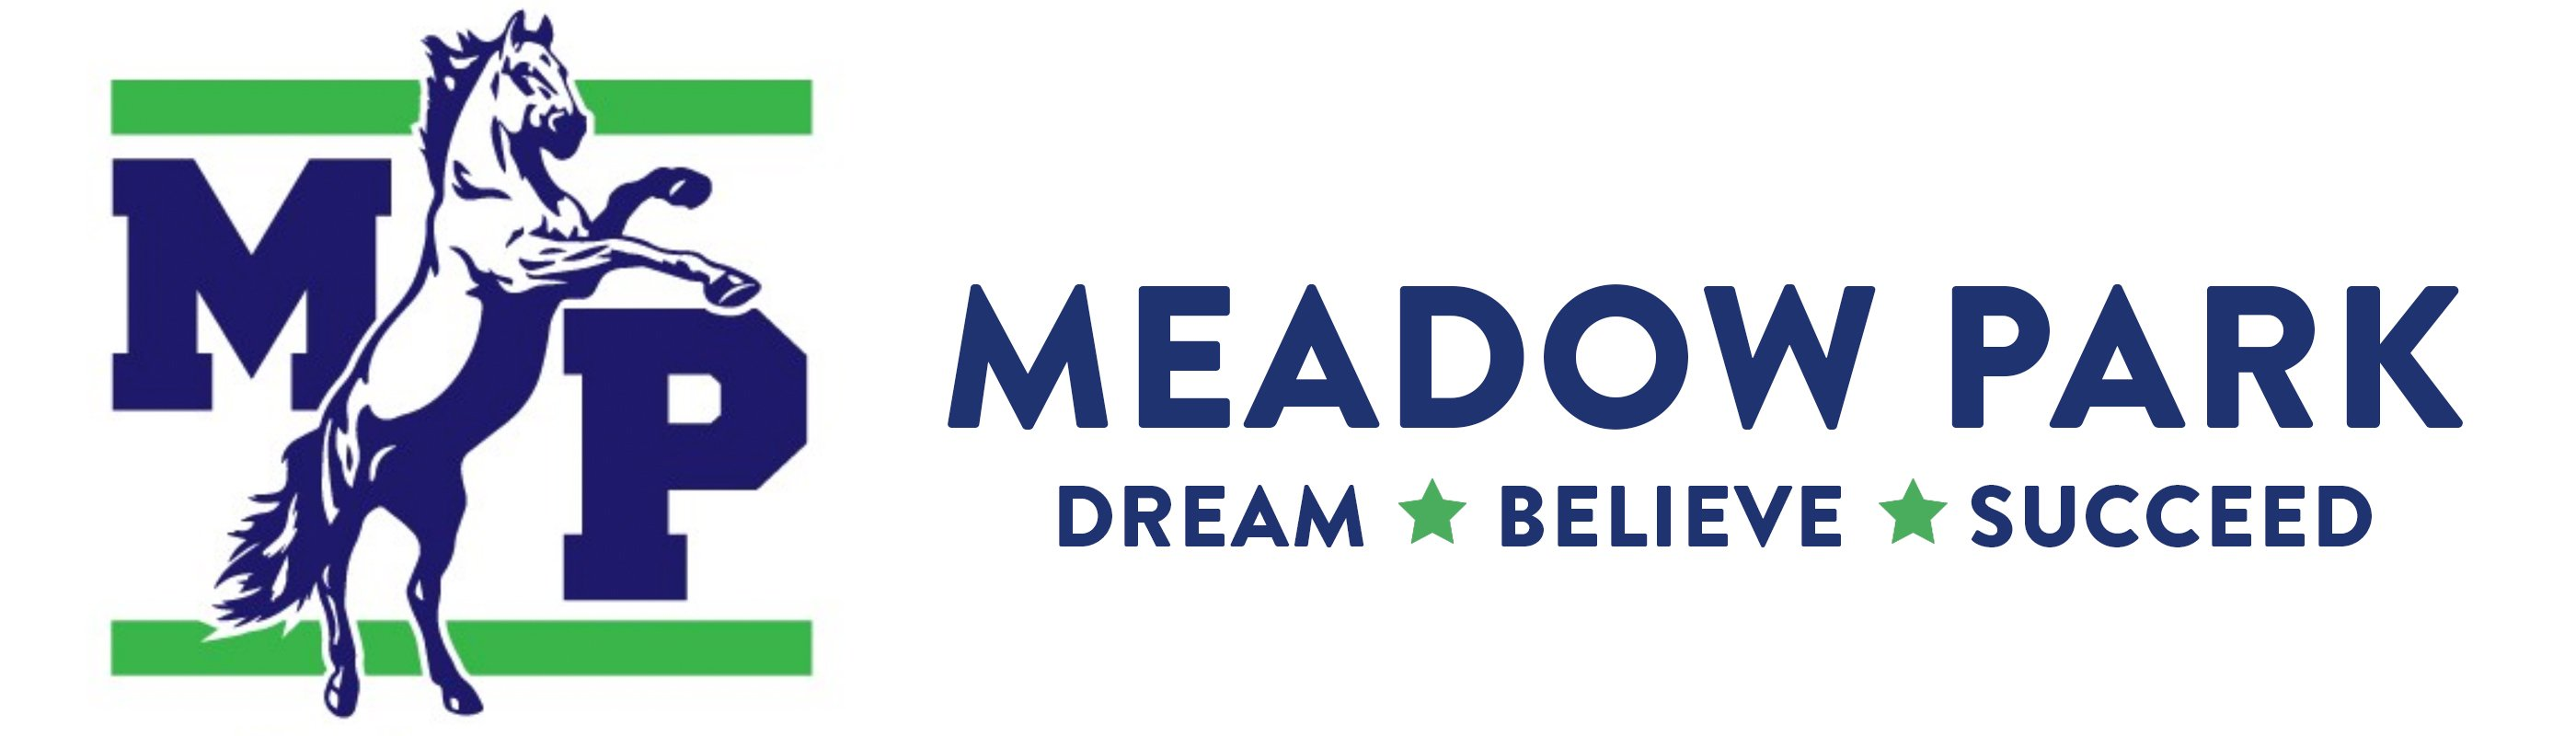 meadow park banner